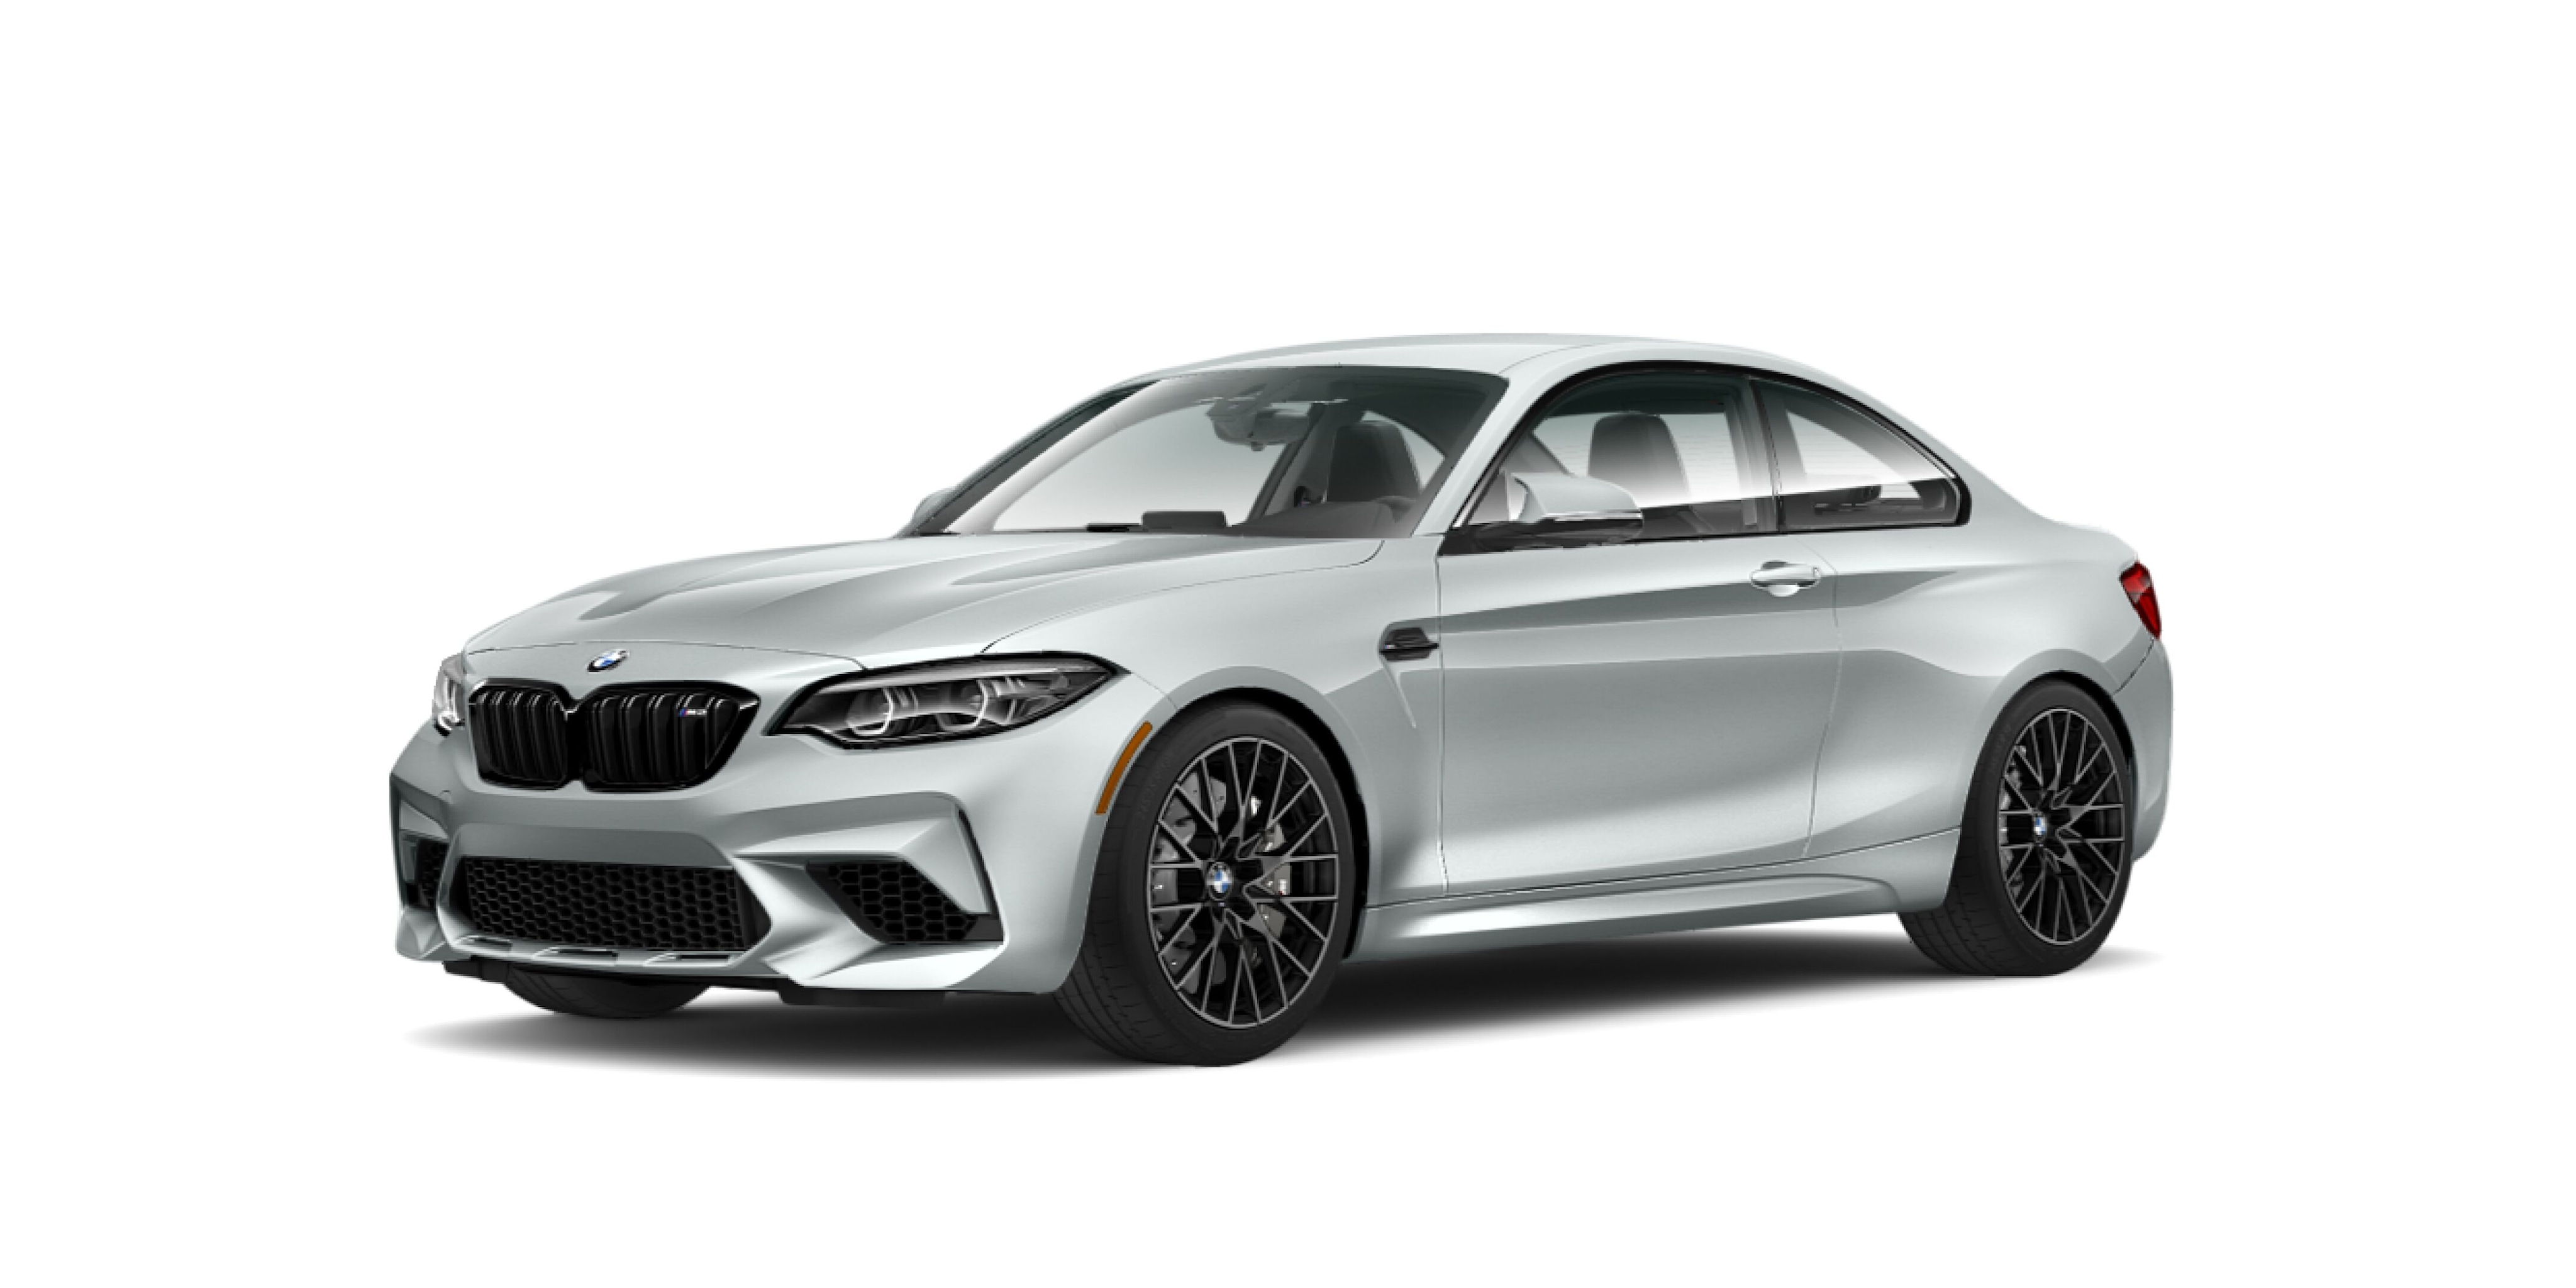 2019 bmw m2 for sale in seattle wa